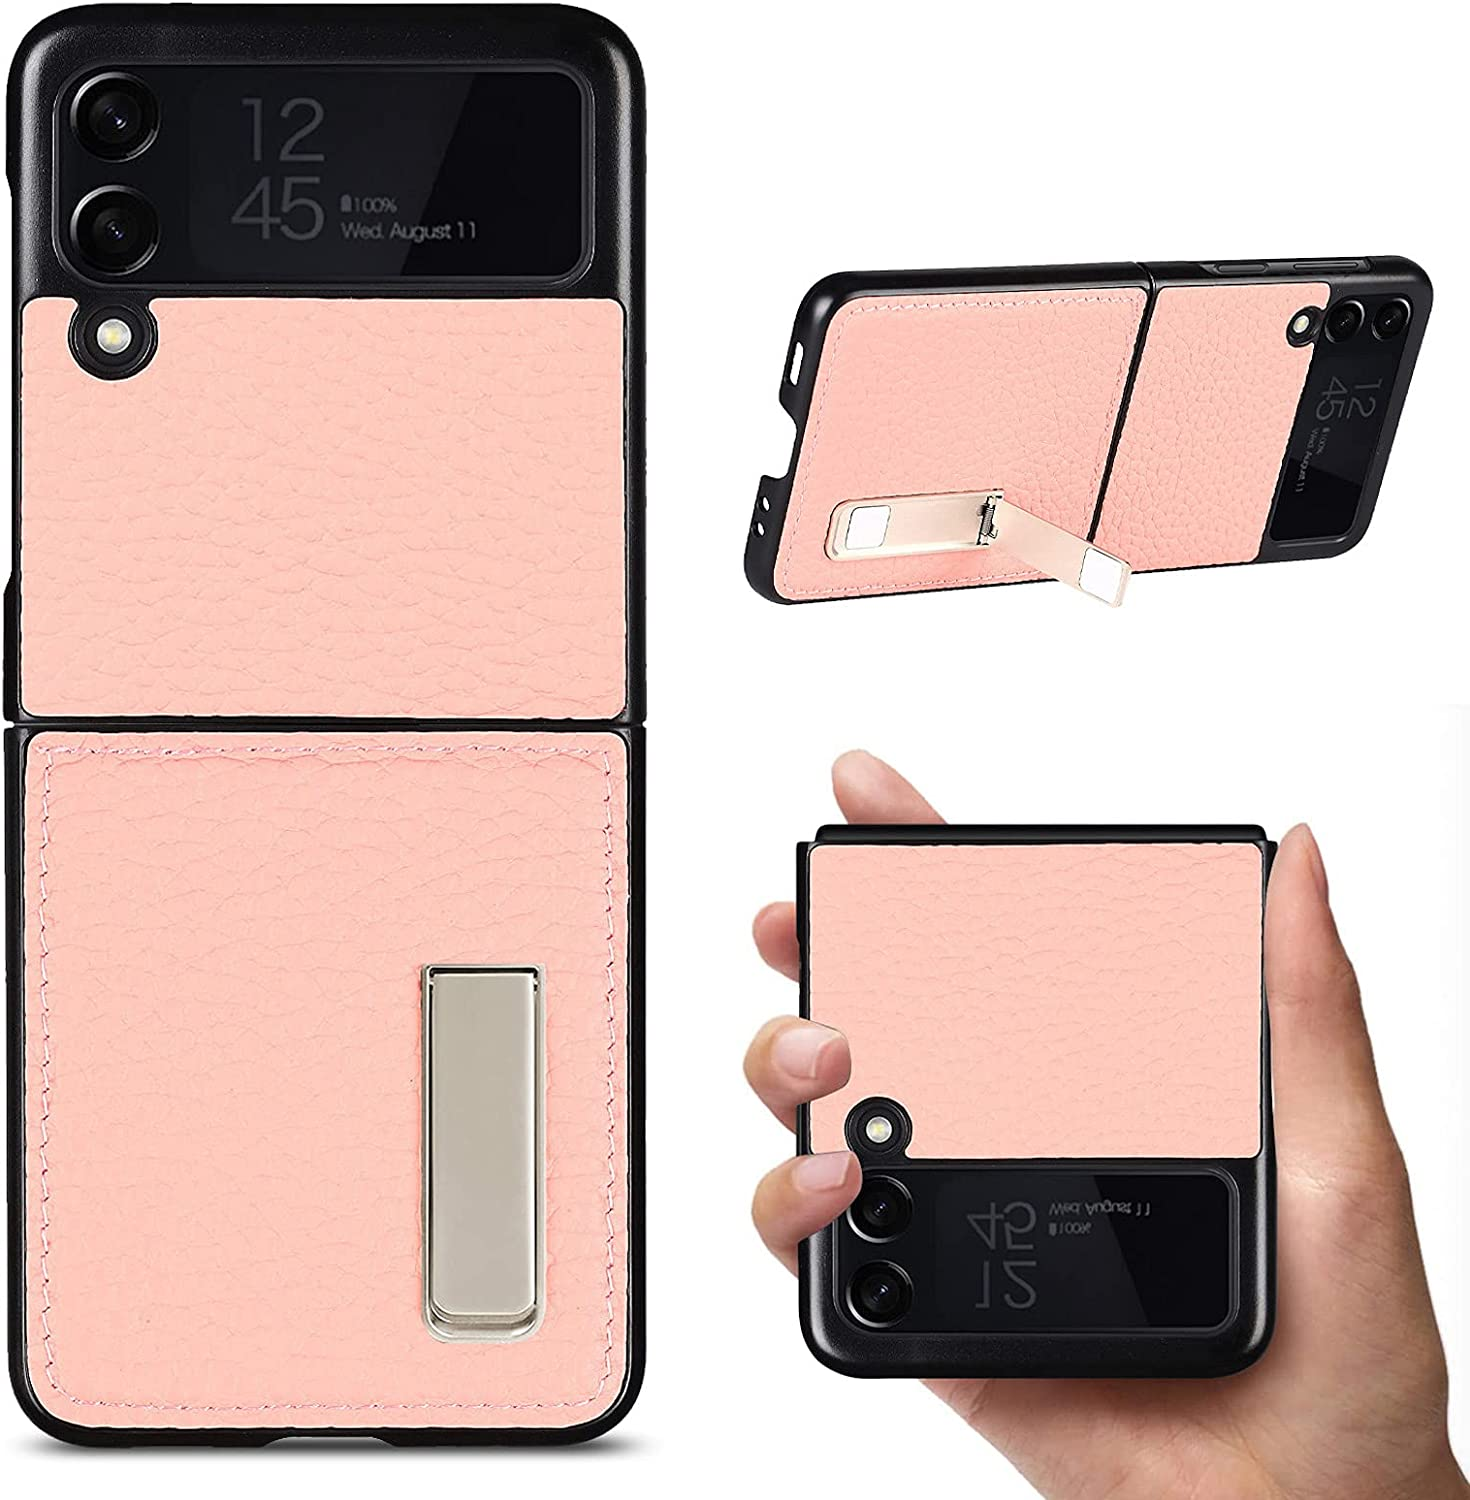 YXE Samsung Galaxy Z Flip 3 5G (2021 Realese) Case,[Genuine Leather] [Full Body Protection] [Dropproof] [Kickstand] Protective Case with Kickstand for Samsung Galaxy Z Flip 3 5G -Rose Gold